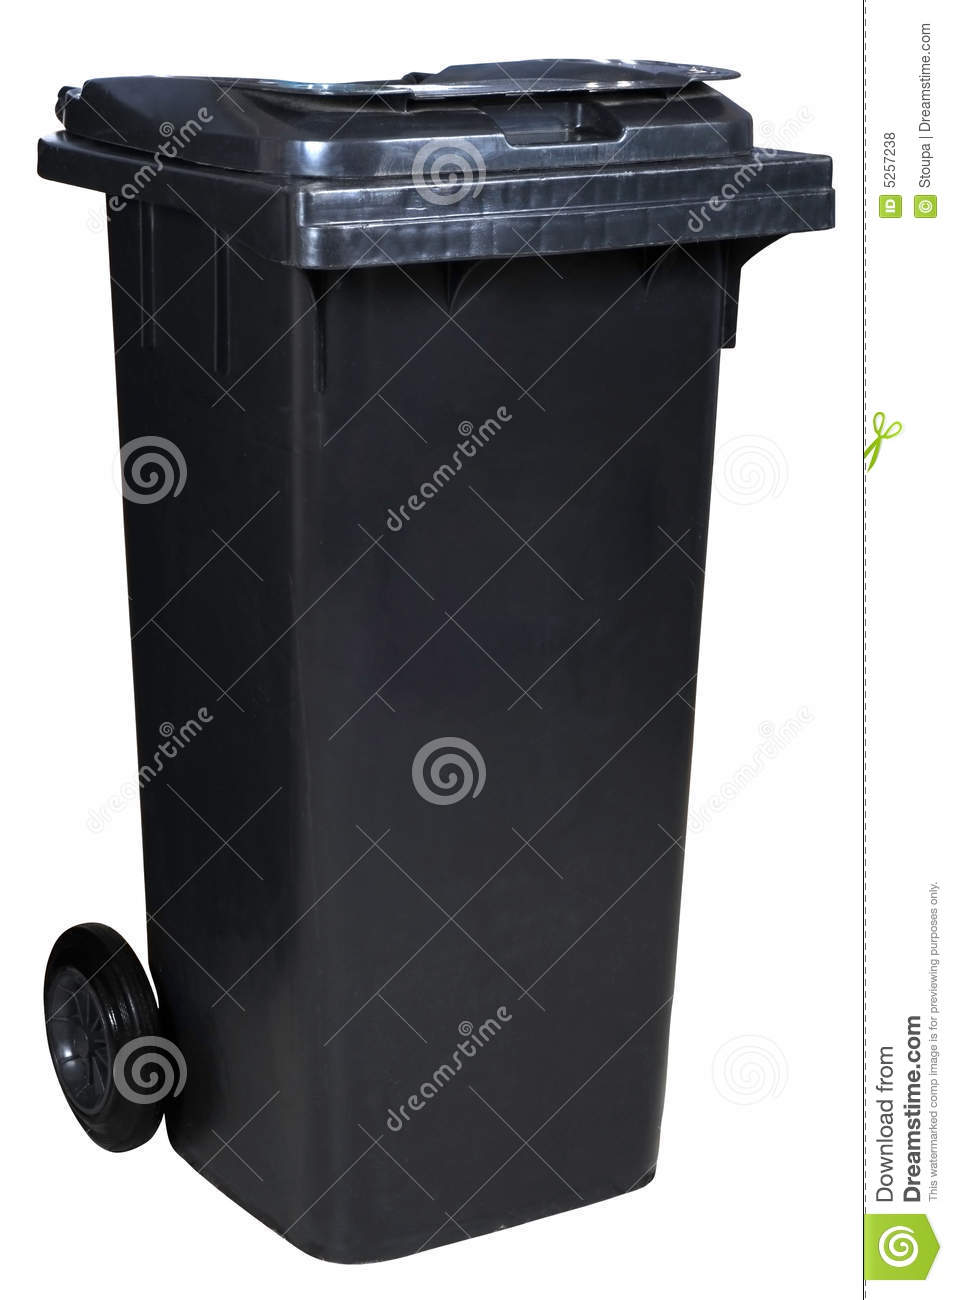 Dustbin Royalty Free Stock Photos Image 5257238